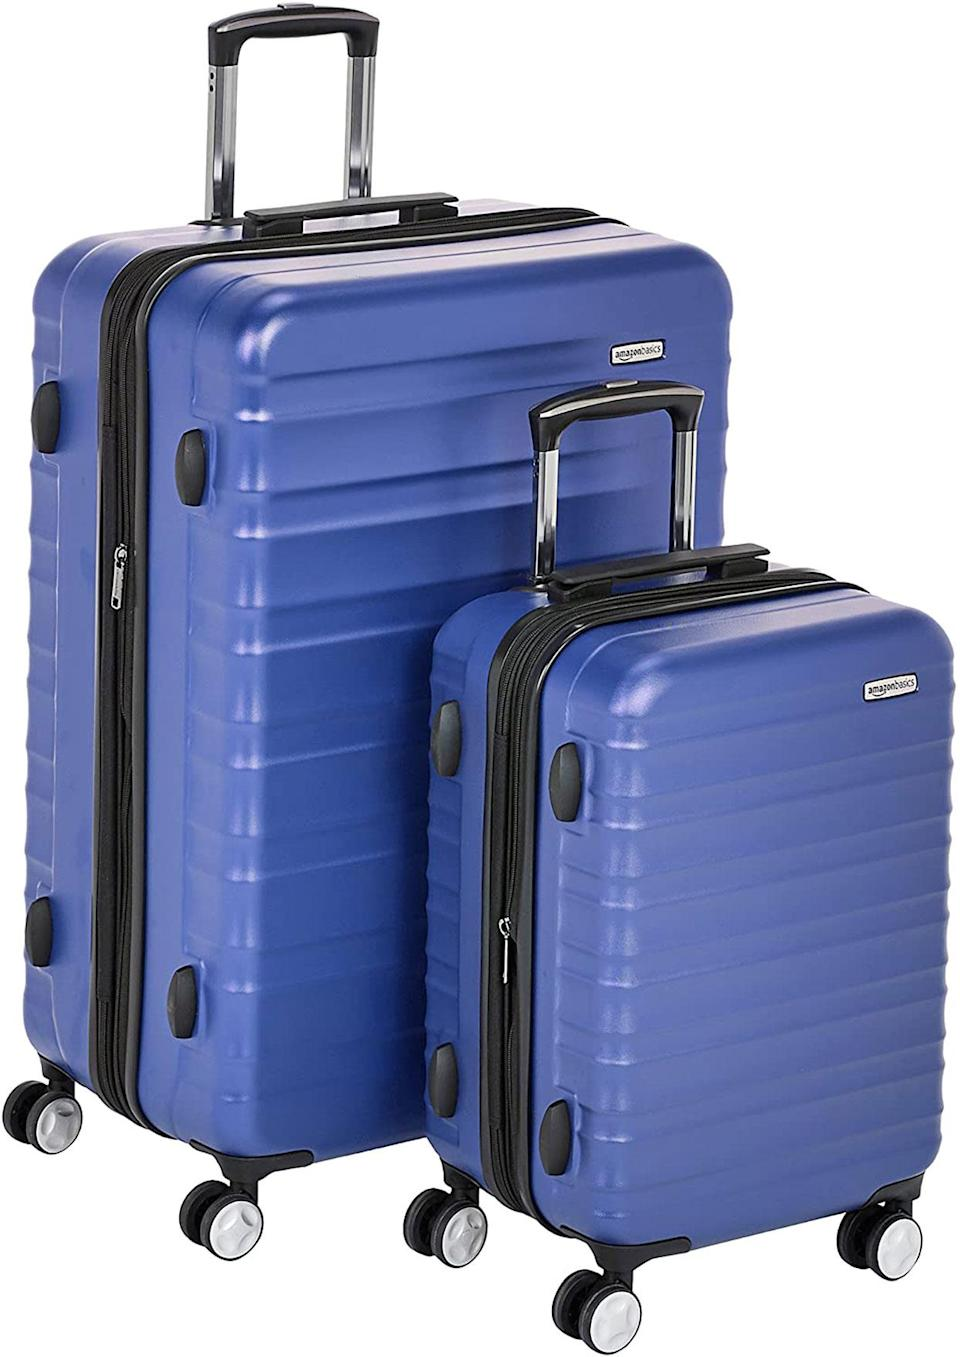 <p>If you're going for a longer change of scenery after being cooped up in the same place for over a year, you might be seeking something more than a carry-on. This hardshell Amazon Basics set is literally two suitcases for the price of one, so you'll have plenty of room for extra essentials — or a few more outfit changes!</p>